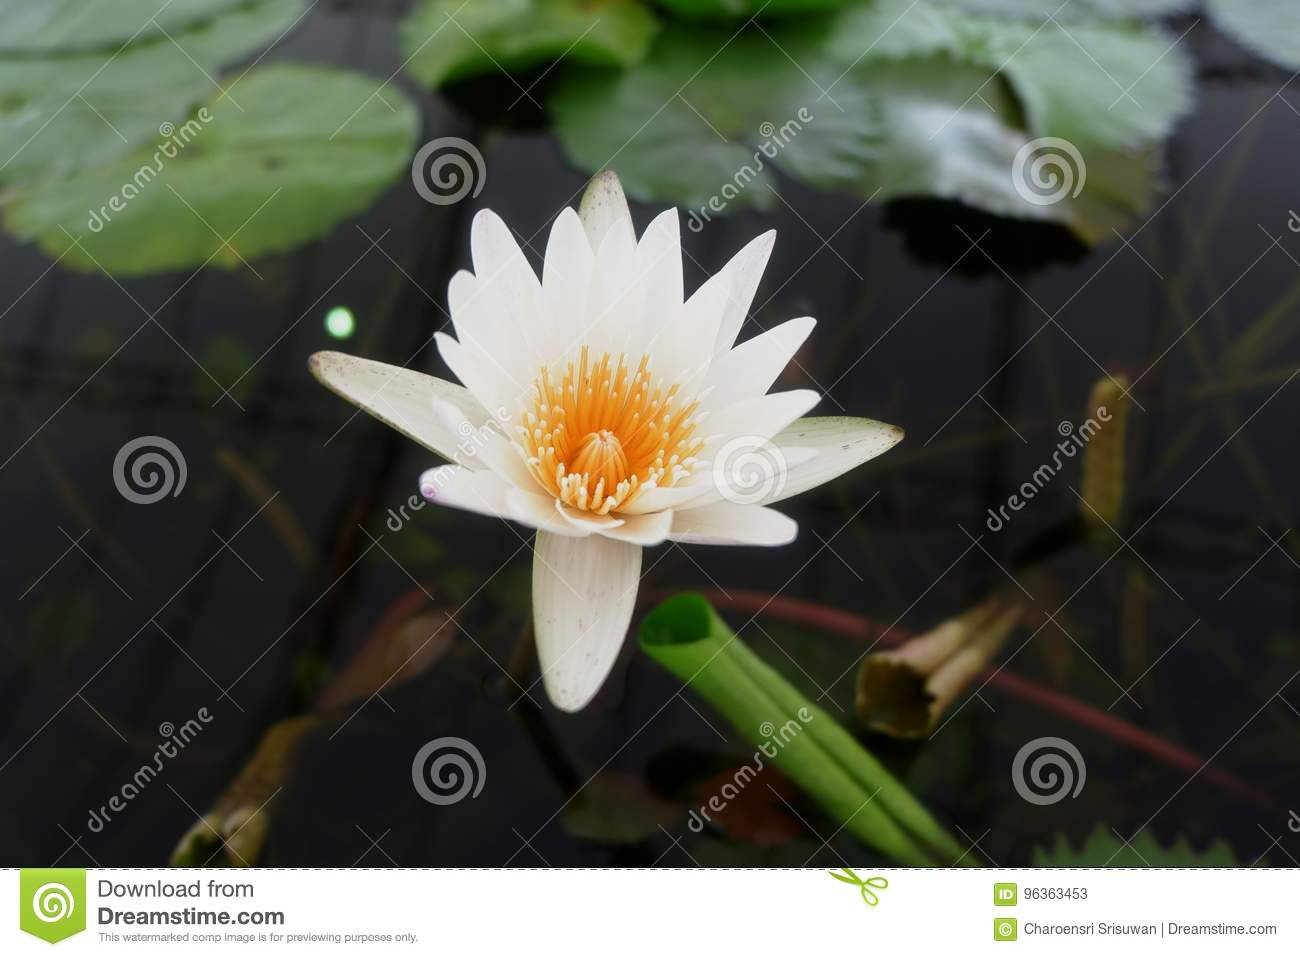 The white purity lotus flower stock image image of blooming download the white purity lotus flower stock image image of blooming devotion izmirmasajfo